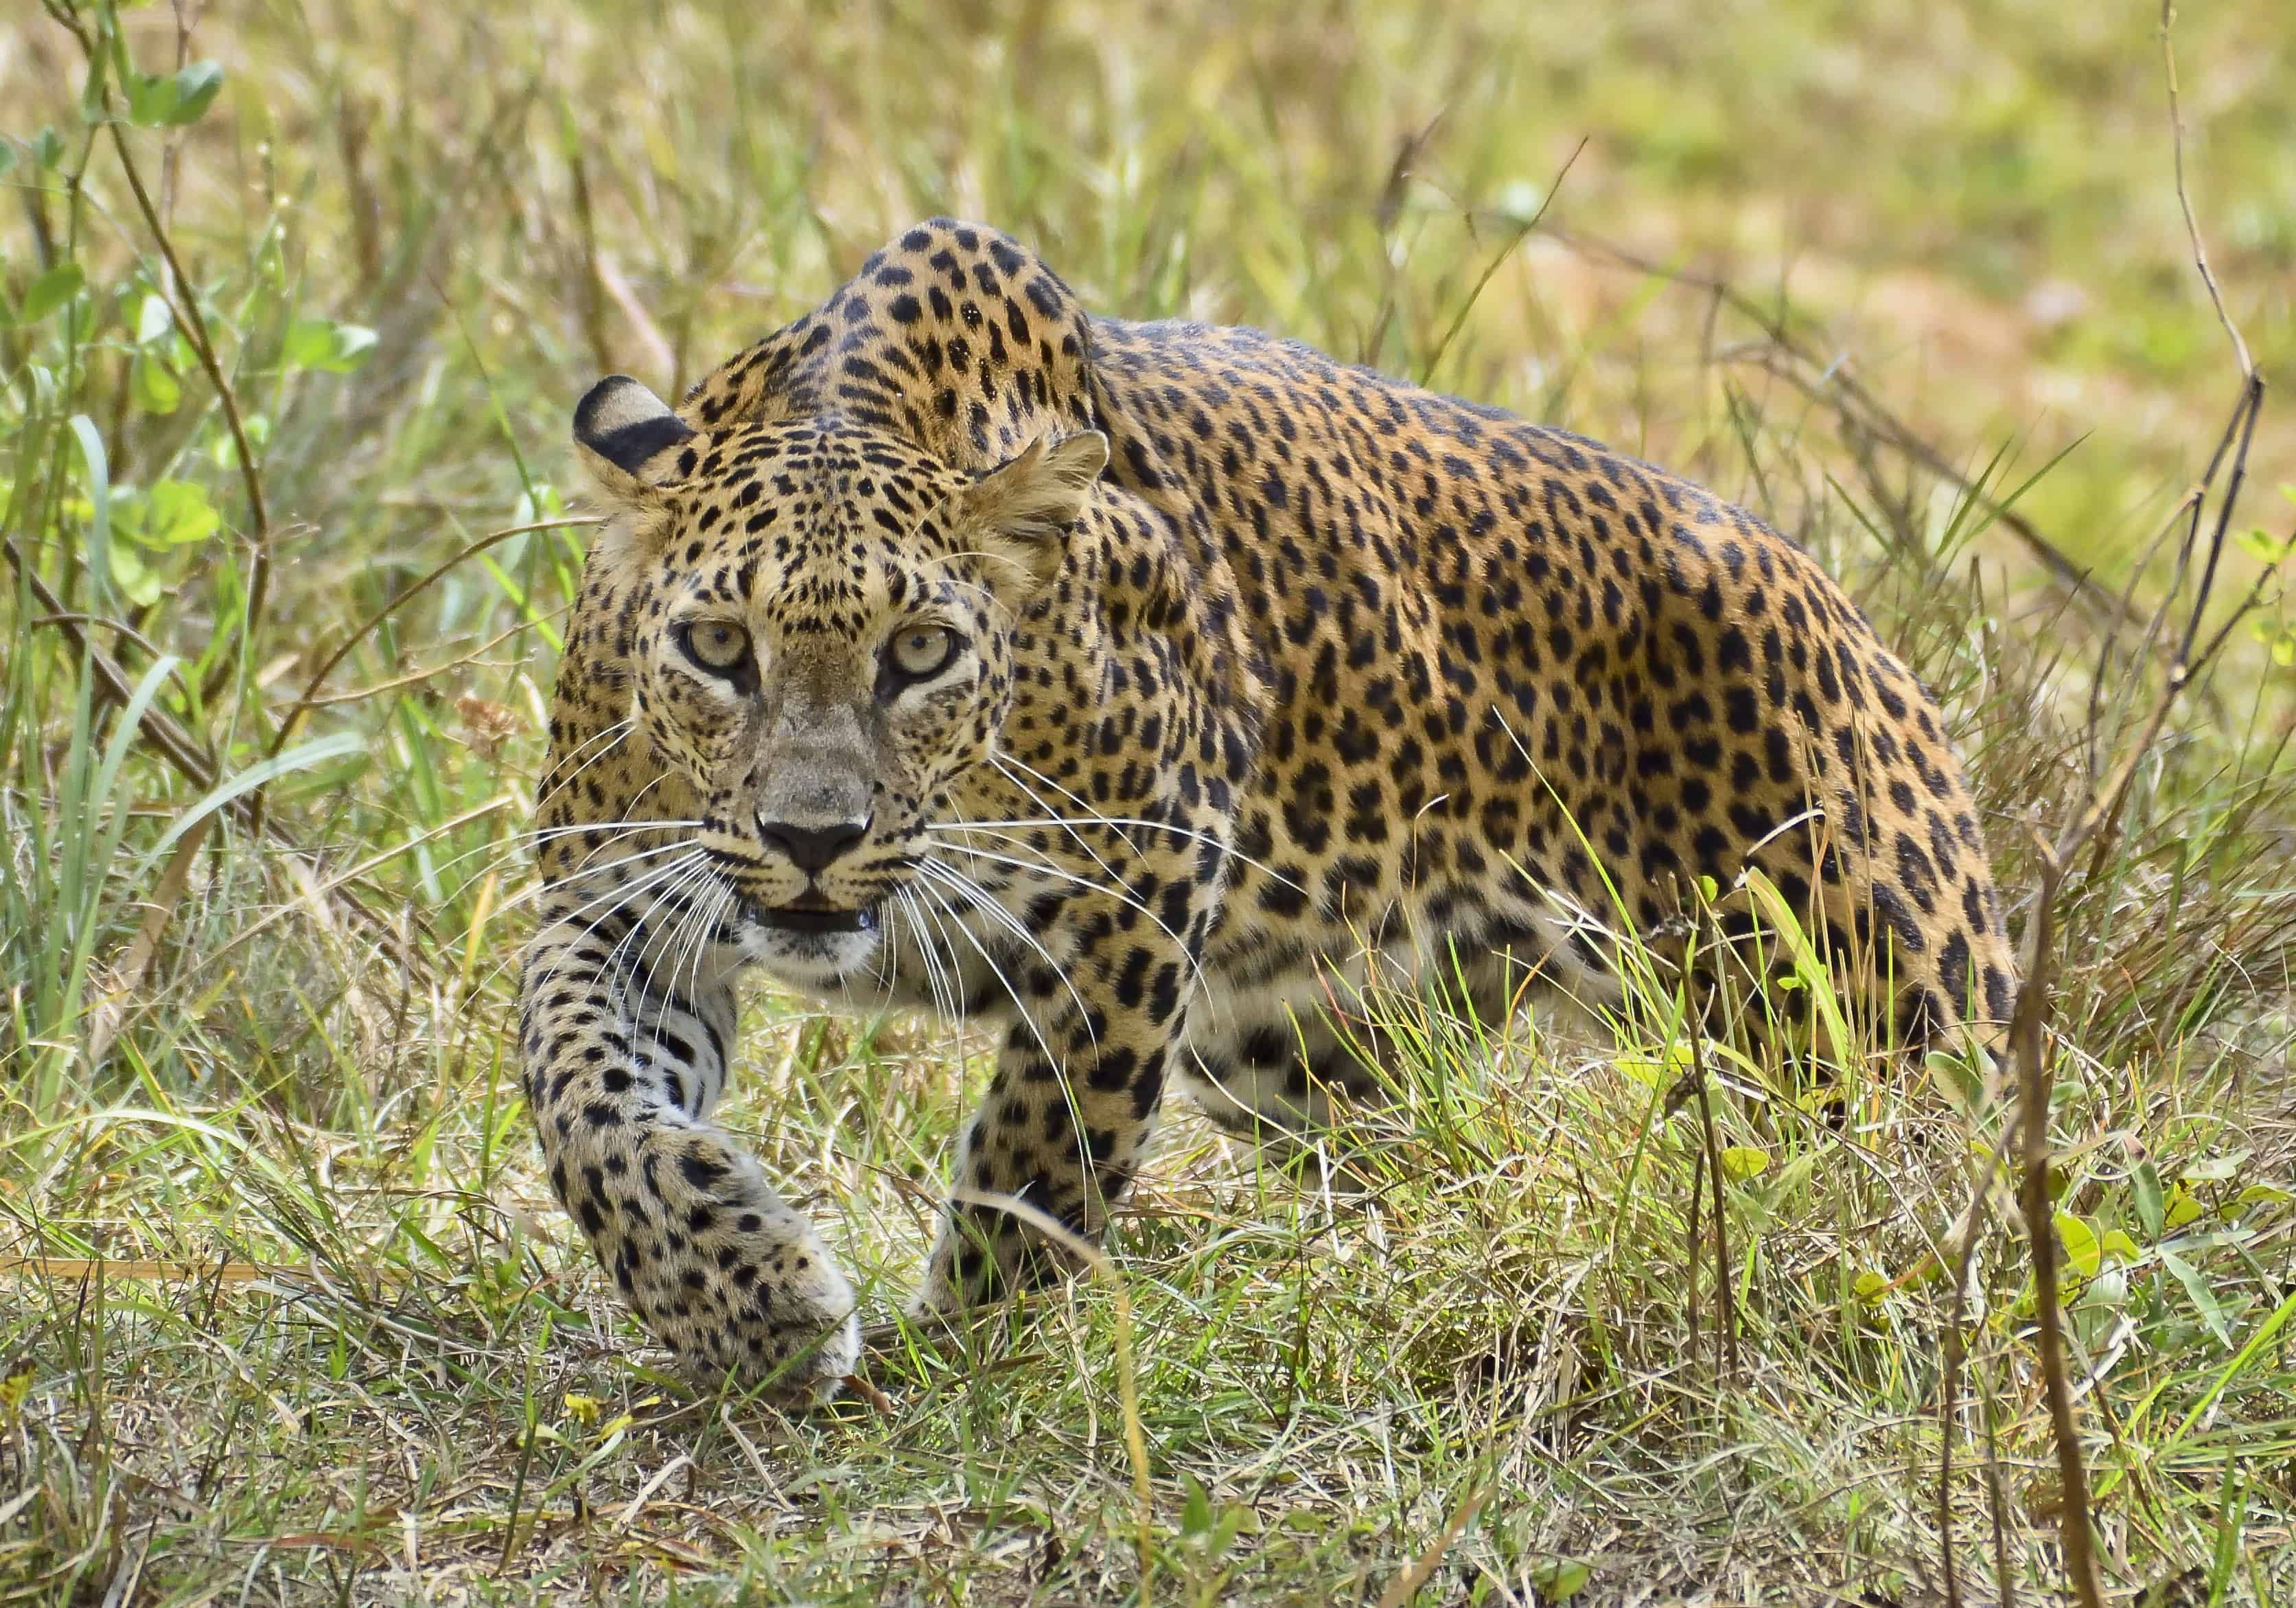 What are the interesting facts about Leopard?